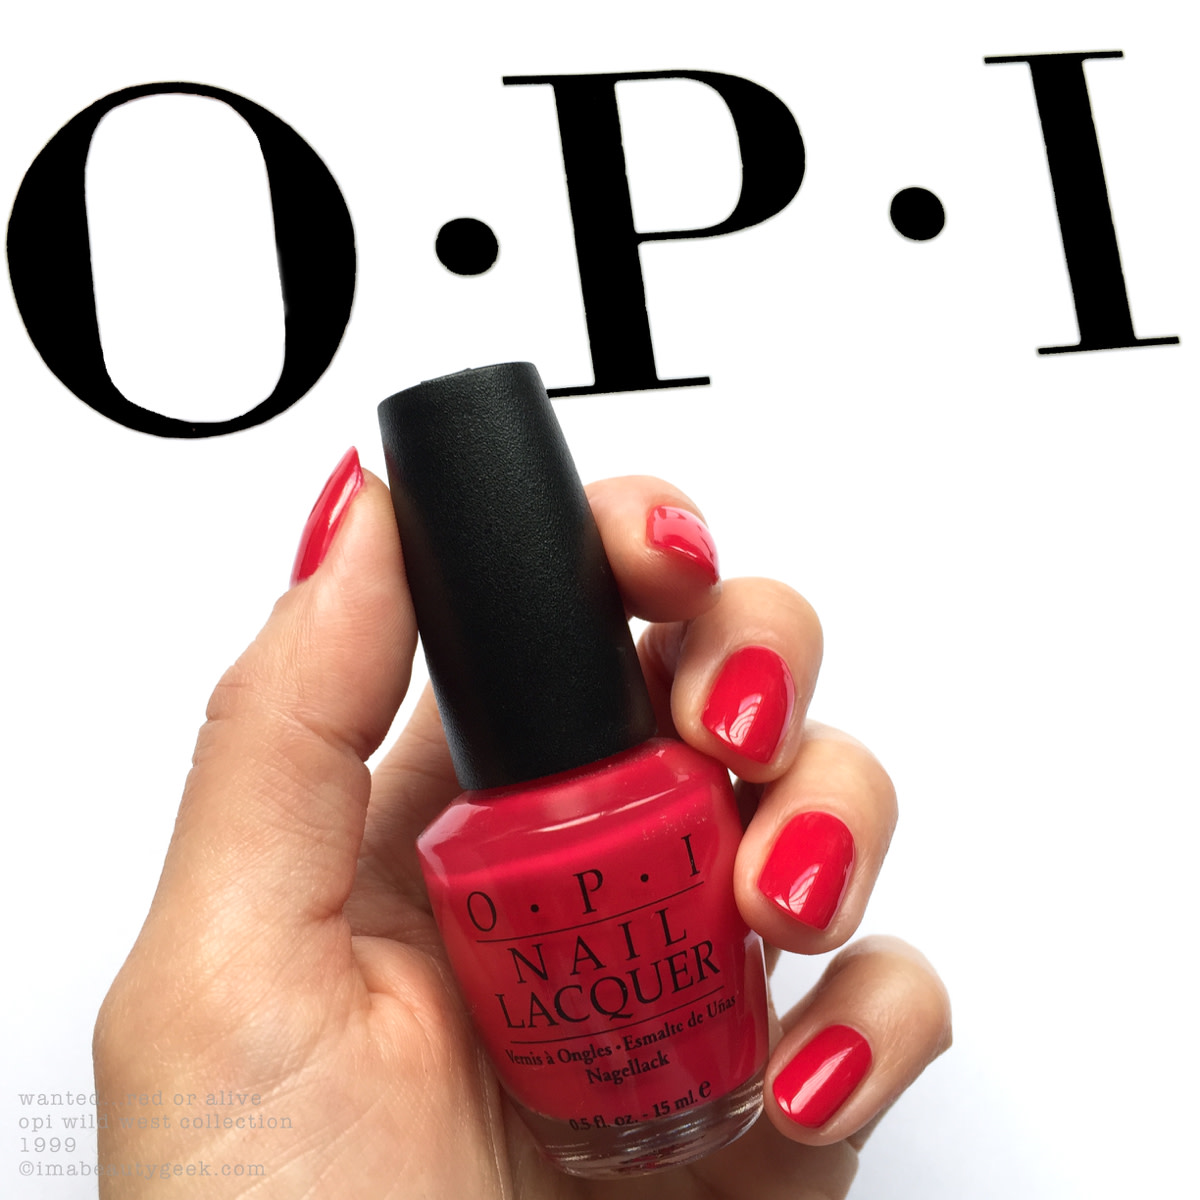 OPI Wanted Red or Alive_OPI Wild West Collection 1999